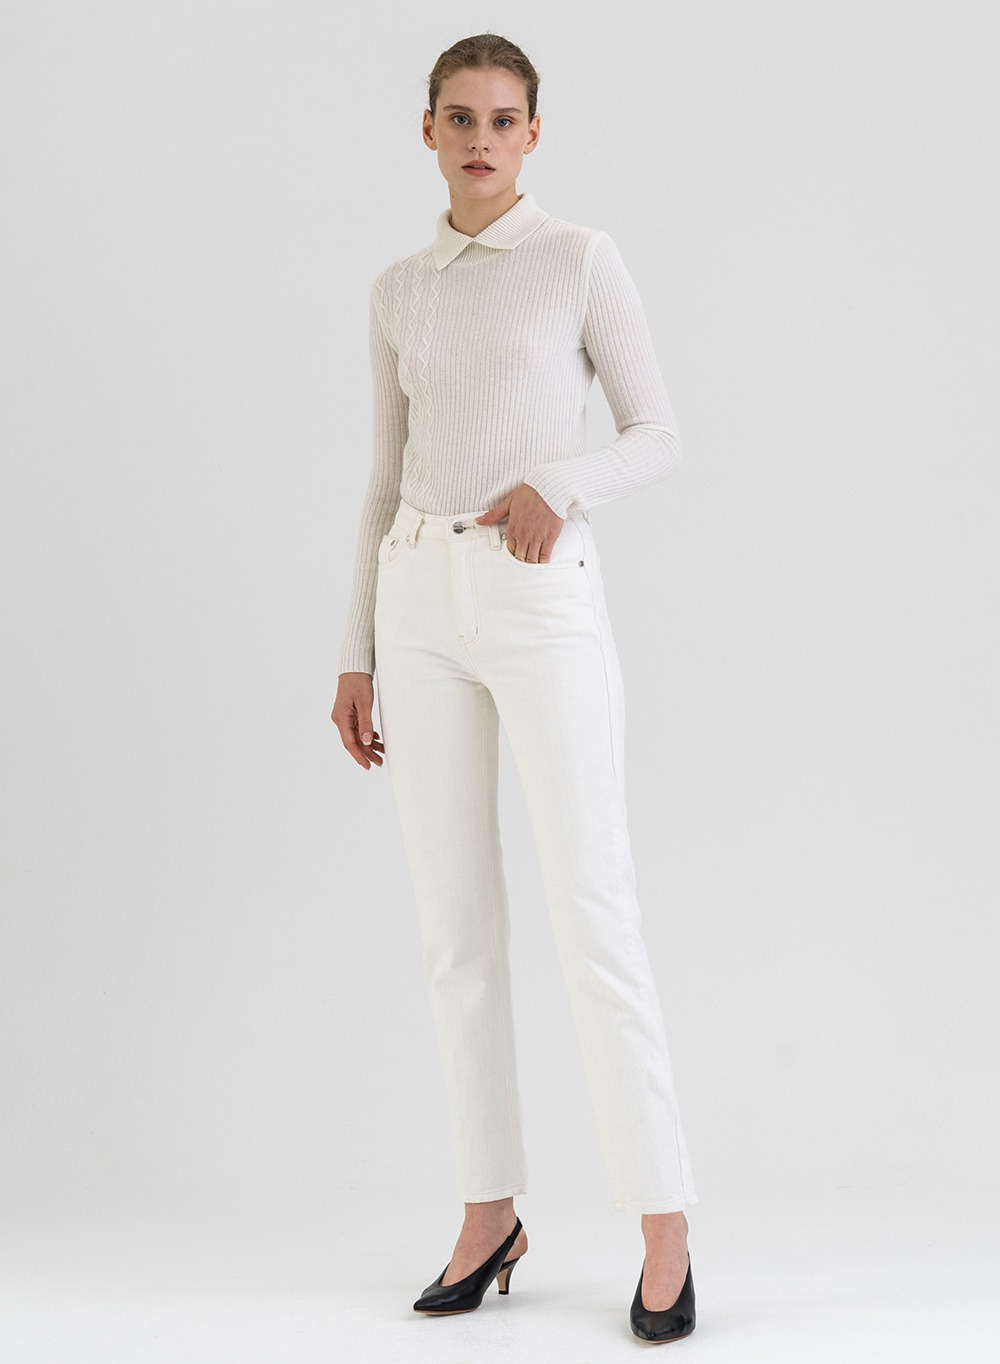 FW21 Slim-Fit Jeans White